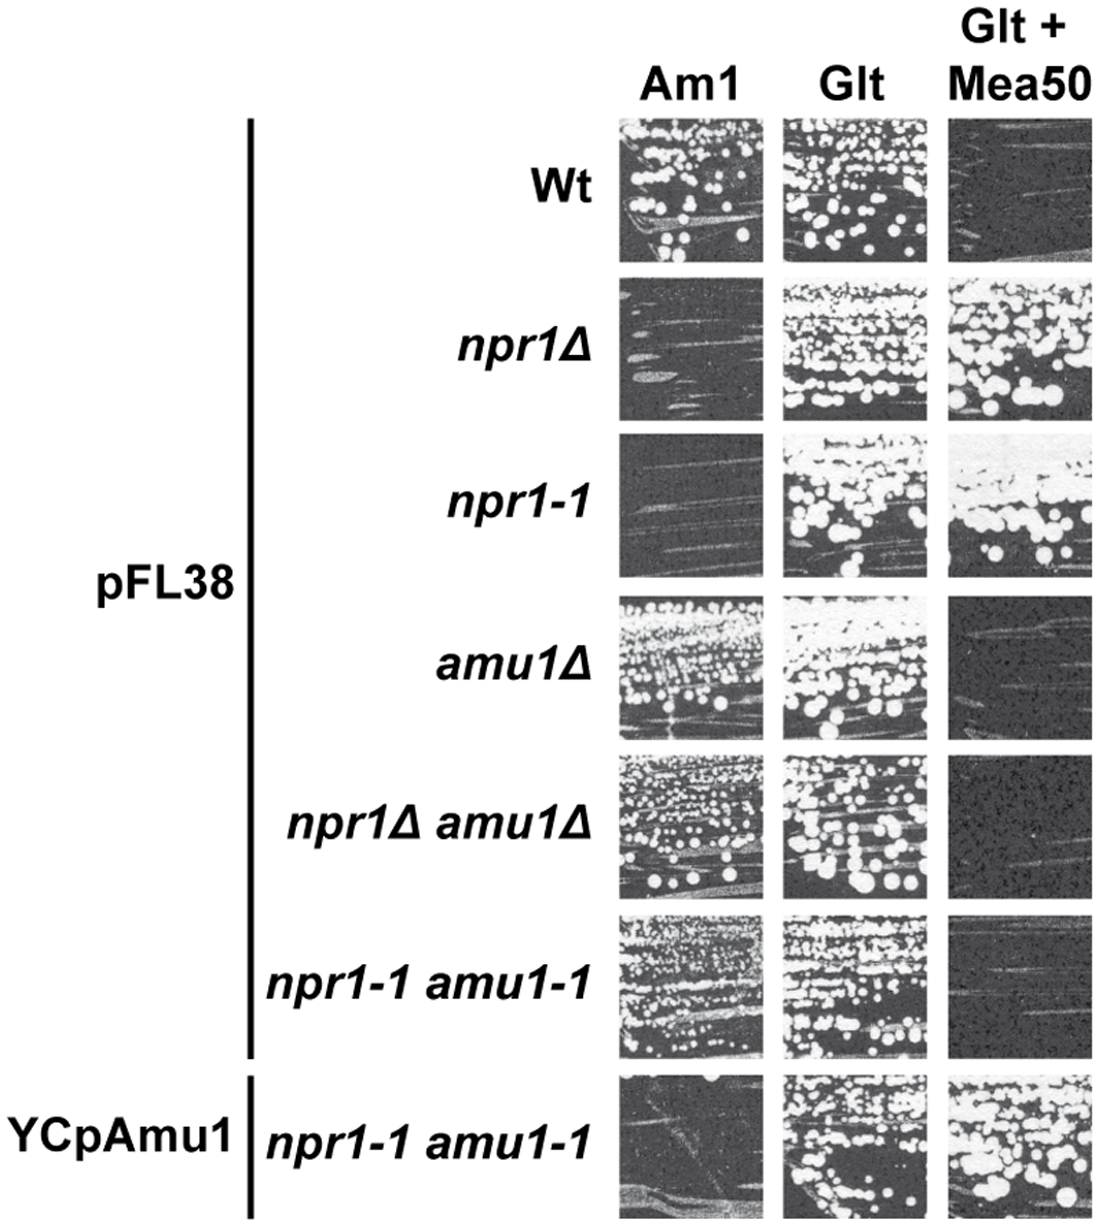 The <i>amu1</i> suppressor mutation restores growth of Npr1-lacking cells on ammonium.